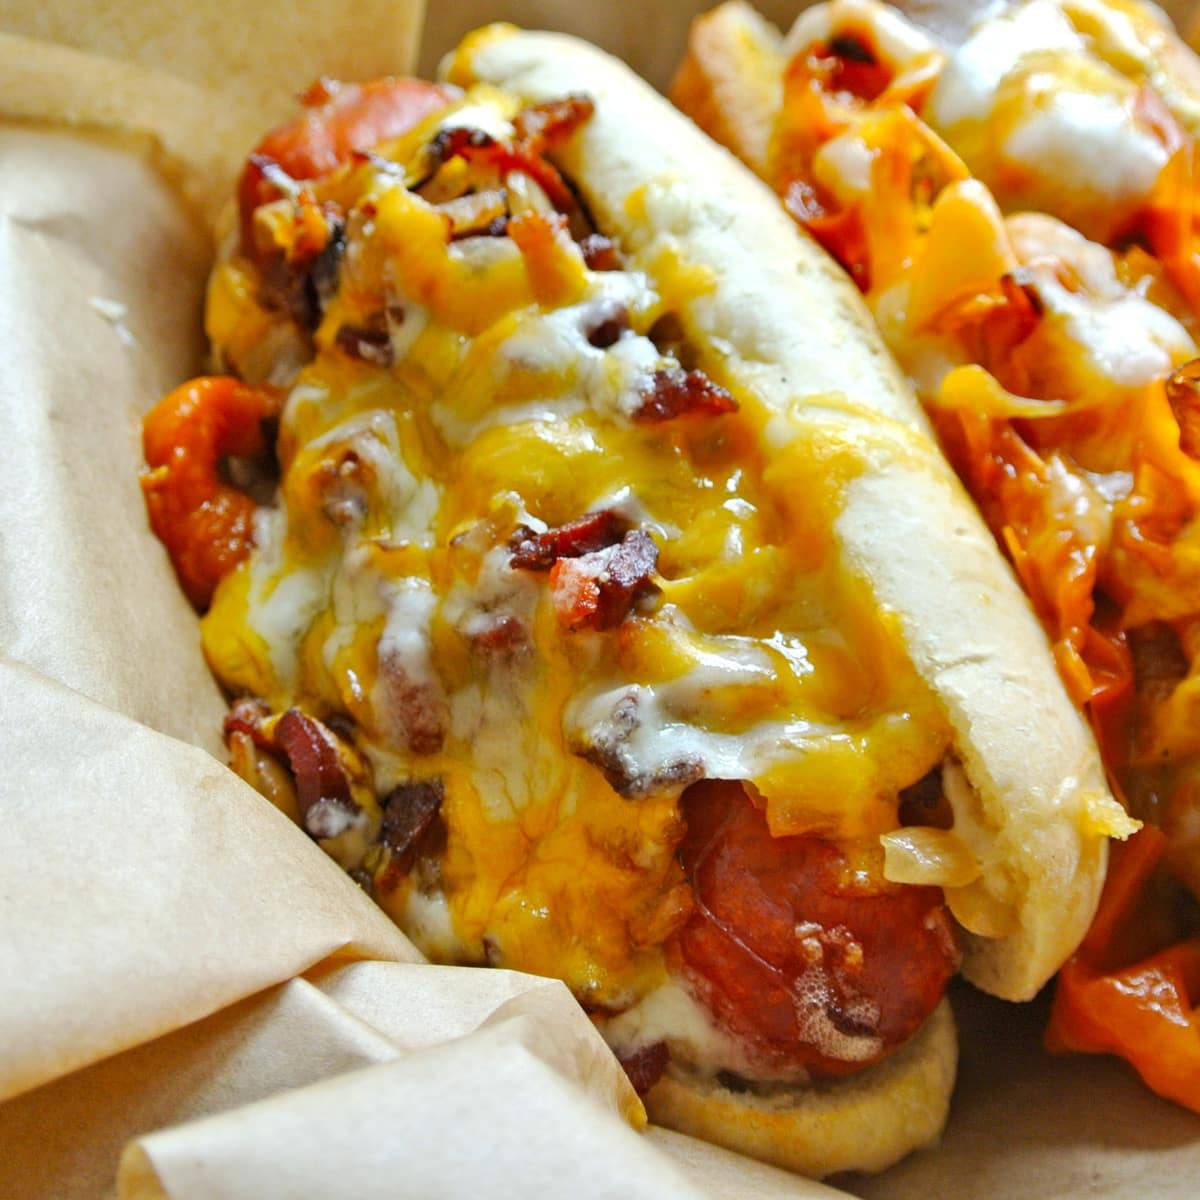 Epic Organic Hot Dogs & Sausages Reign Supreme at Underdog in the Inner Sunset